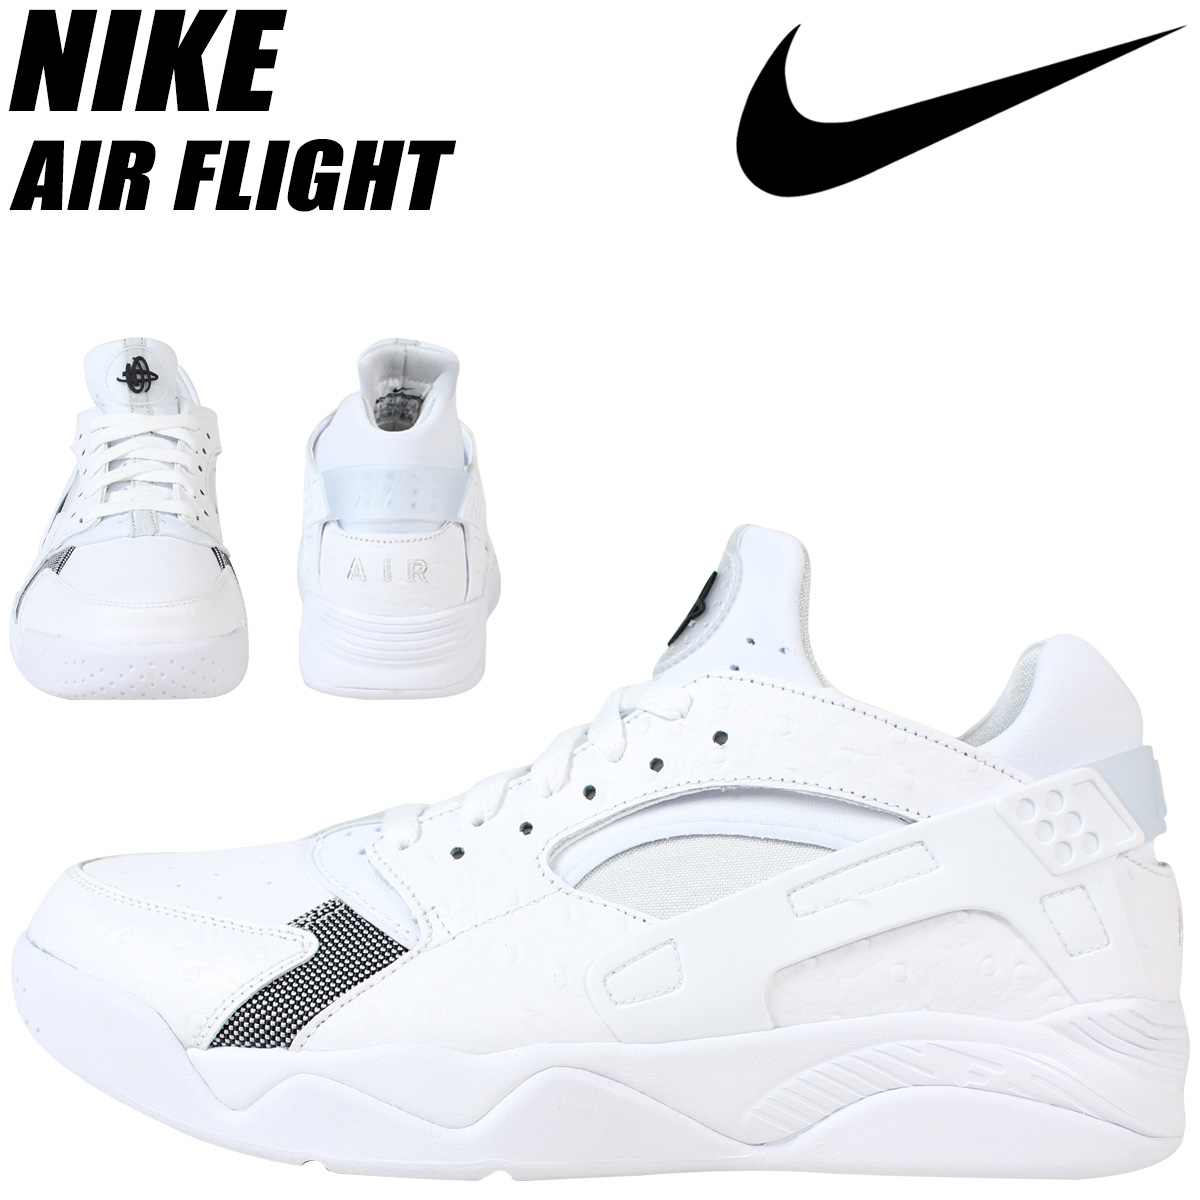 the best attitude e8941 db0a1 The origin of the name comes from the Greece myths of one Jeff Johnson saw  in the dream, victory goddess Nike (Nike).